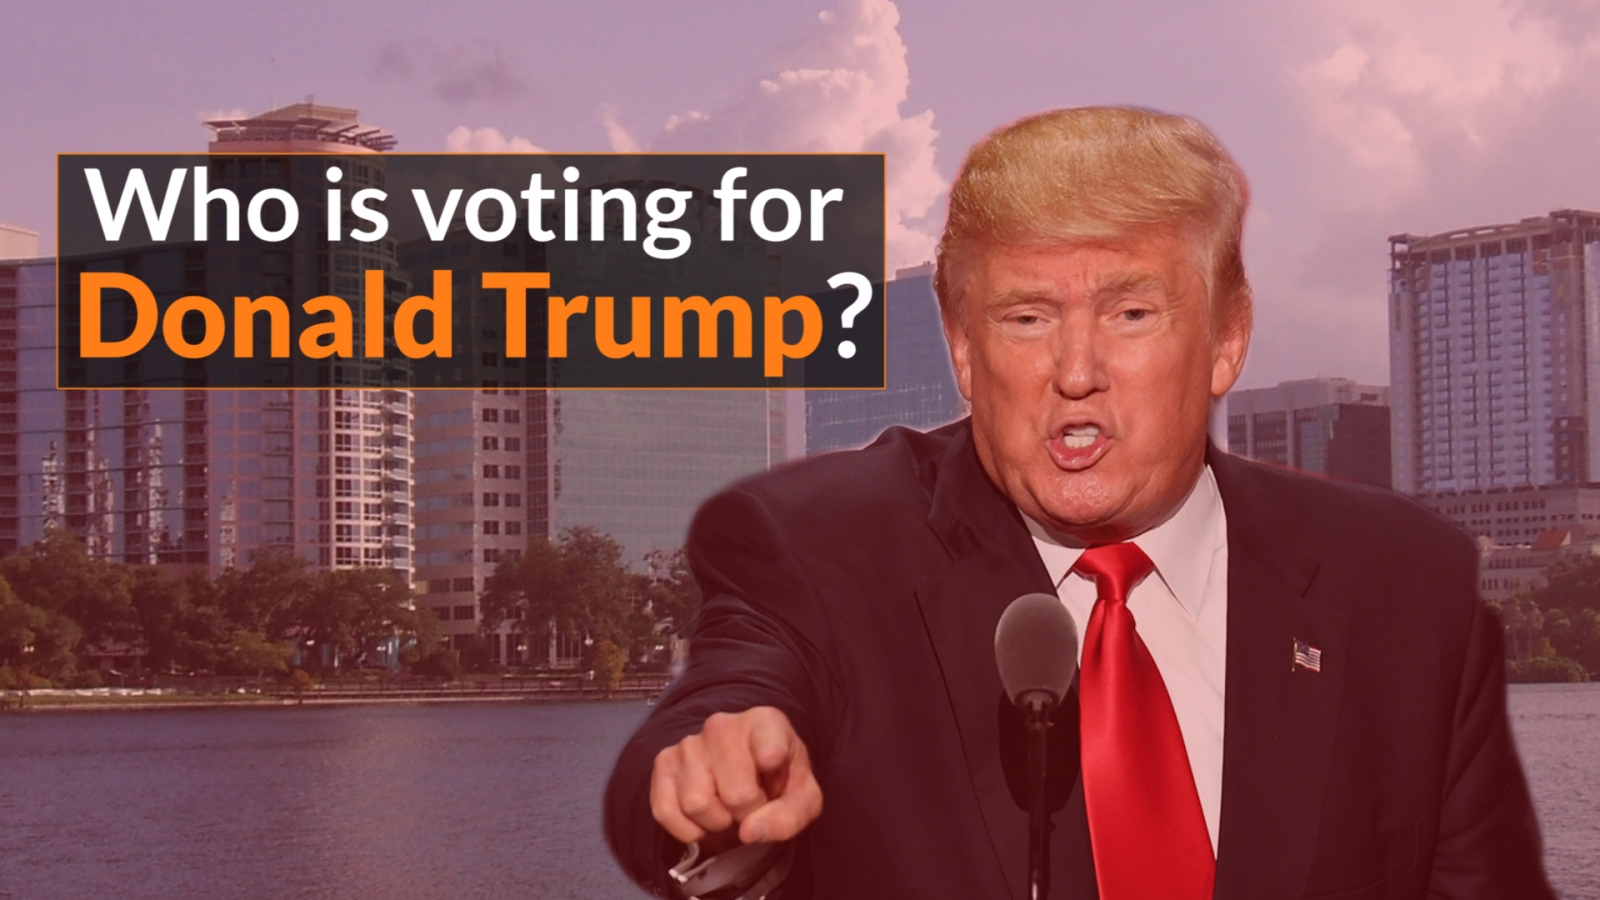 Who is voting for Donald Trump?